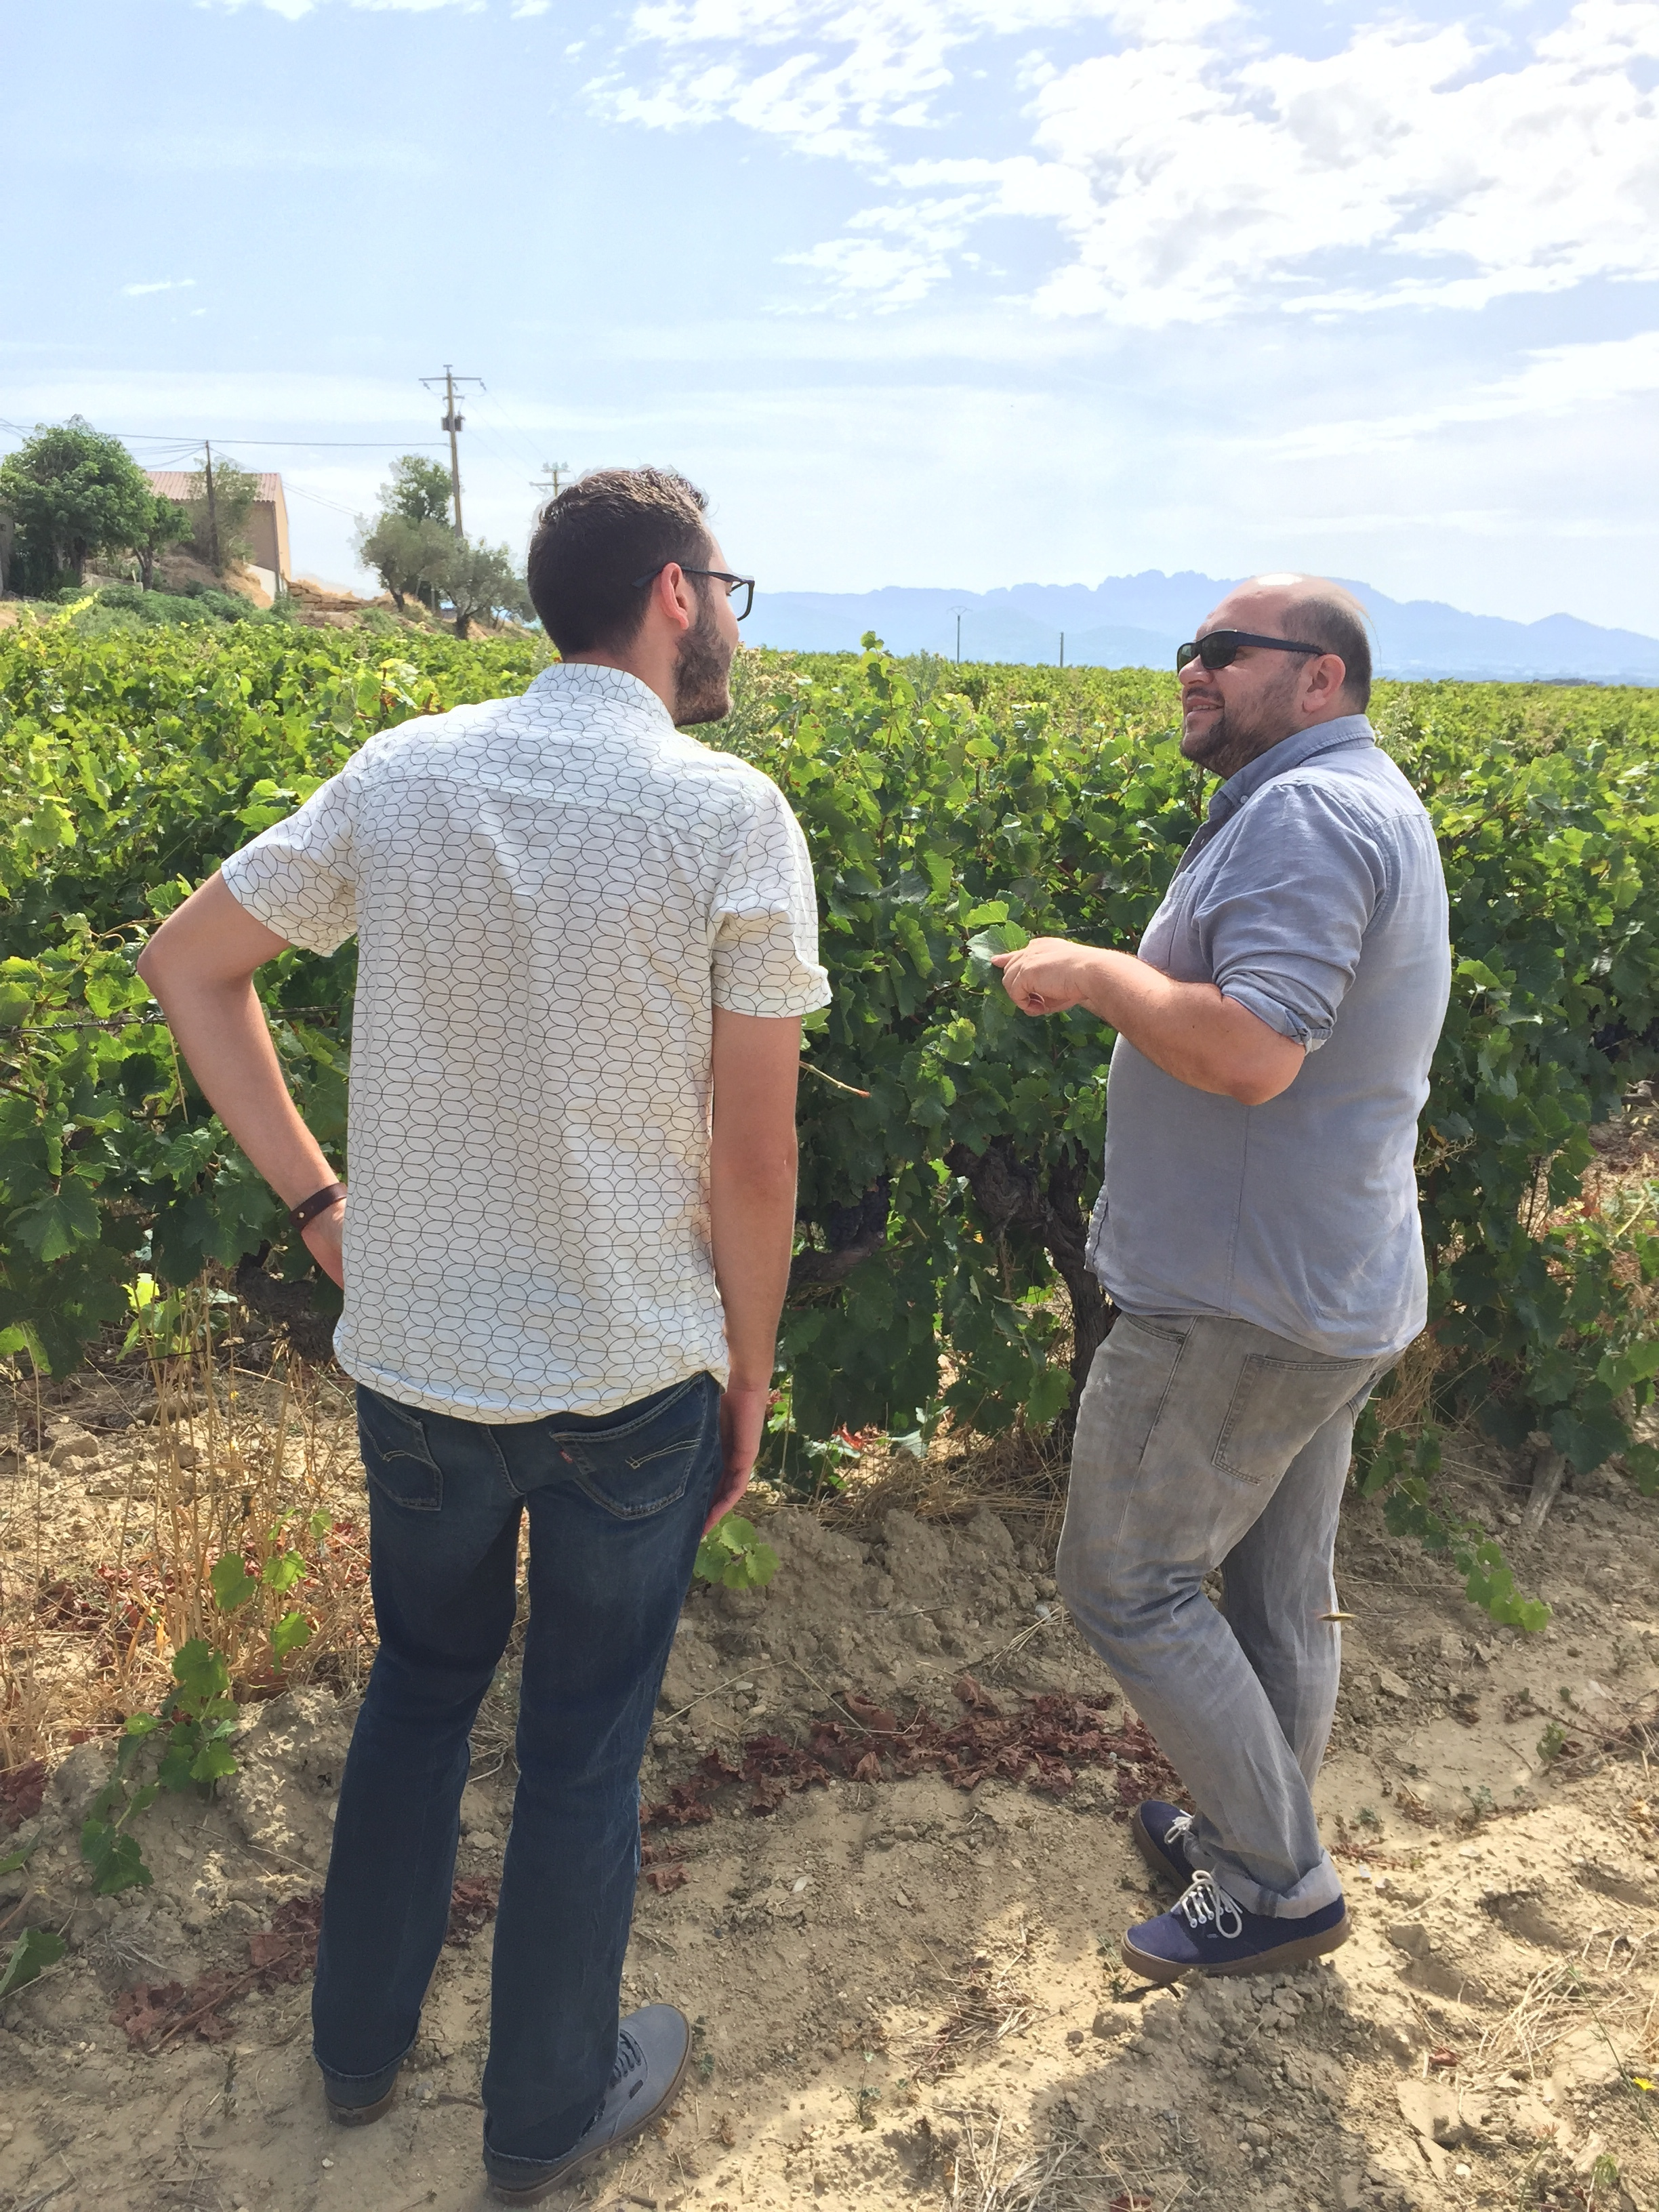 Me and Wilfried chilling in the vines, discussing harvest